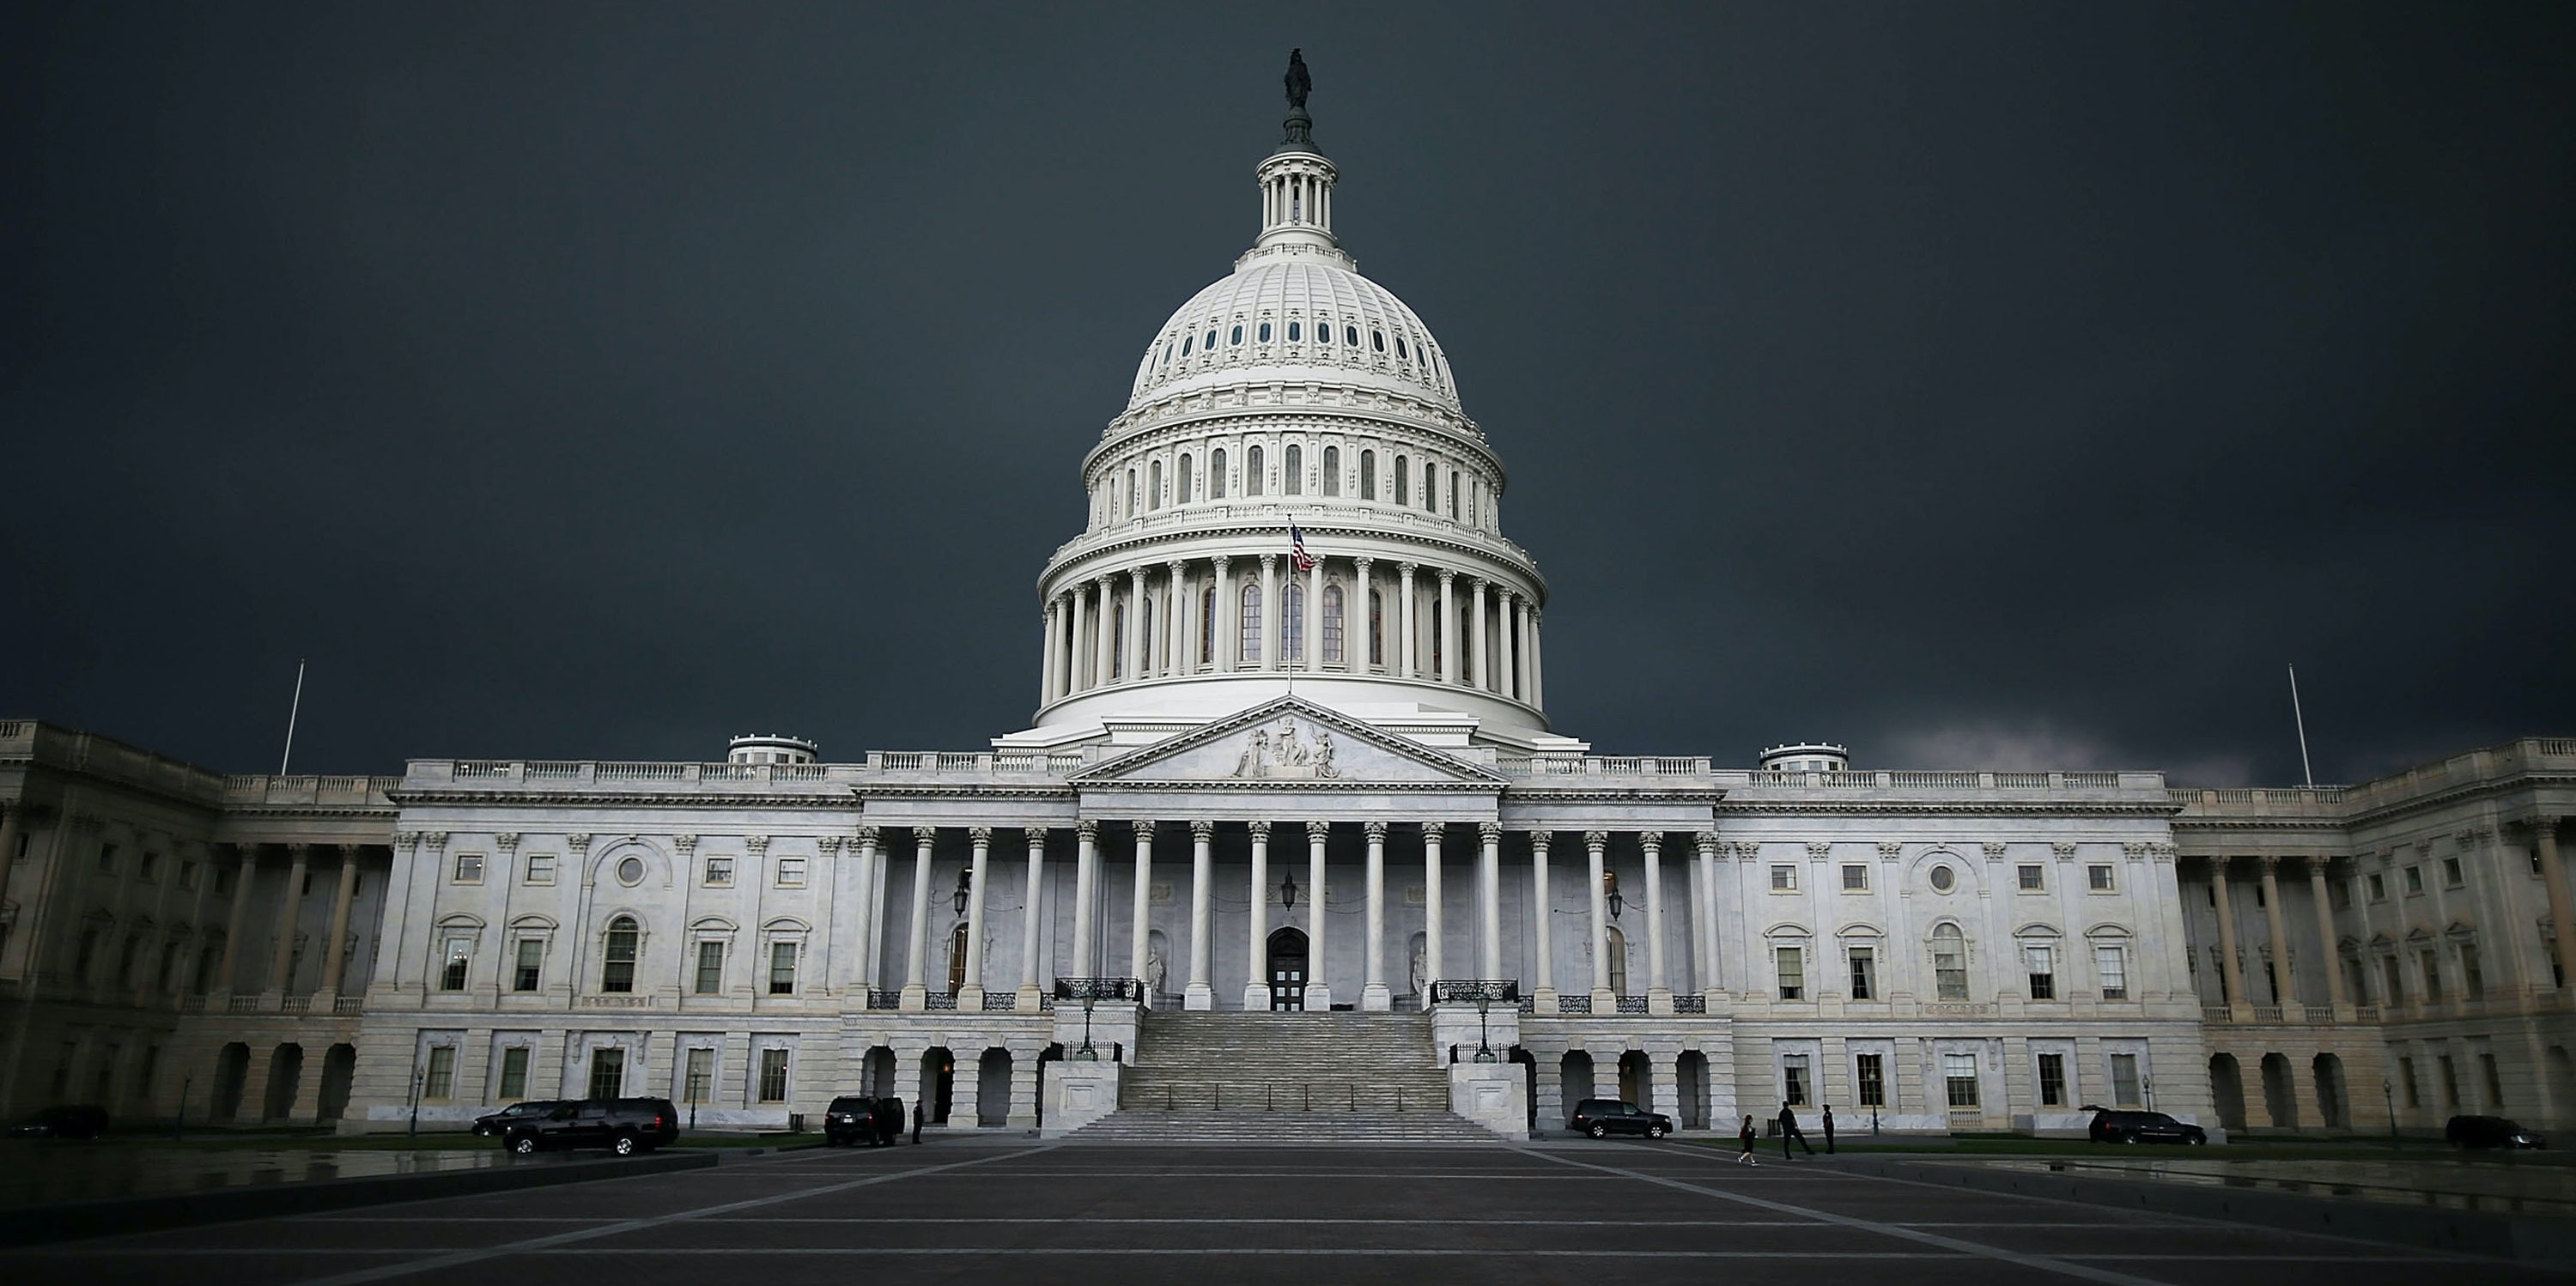 Storm clouds fill the sky over the U.S. Capitol Building, June 13, 2013 in Washington, DC. Potentially damaging storms are forecasted to hit parts of the east coast with potential for causing power wide spread outages.